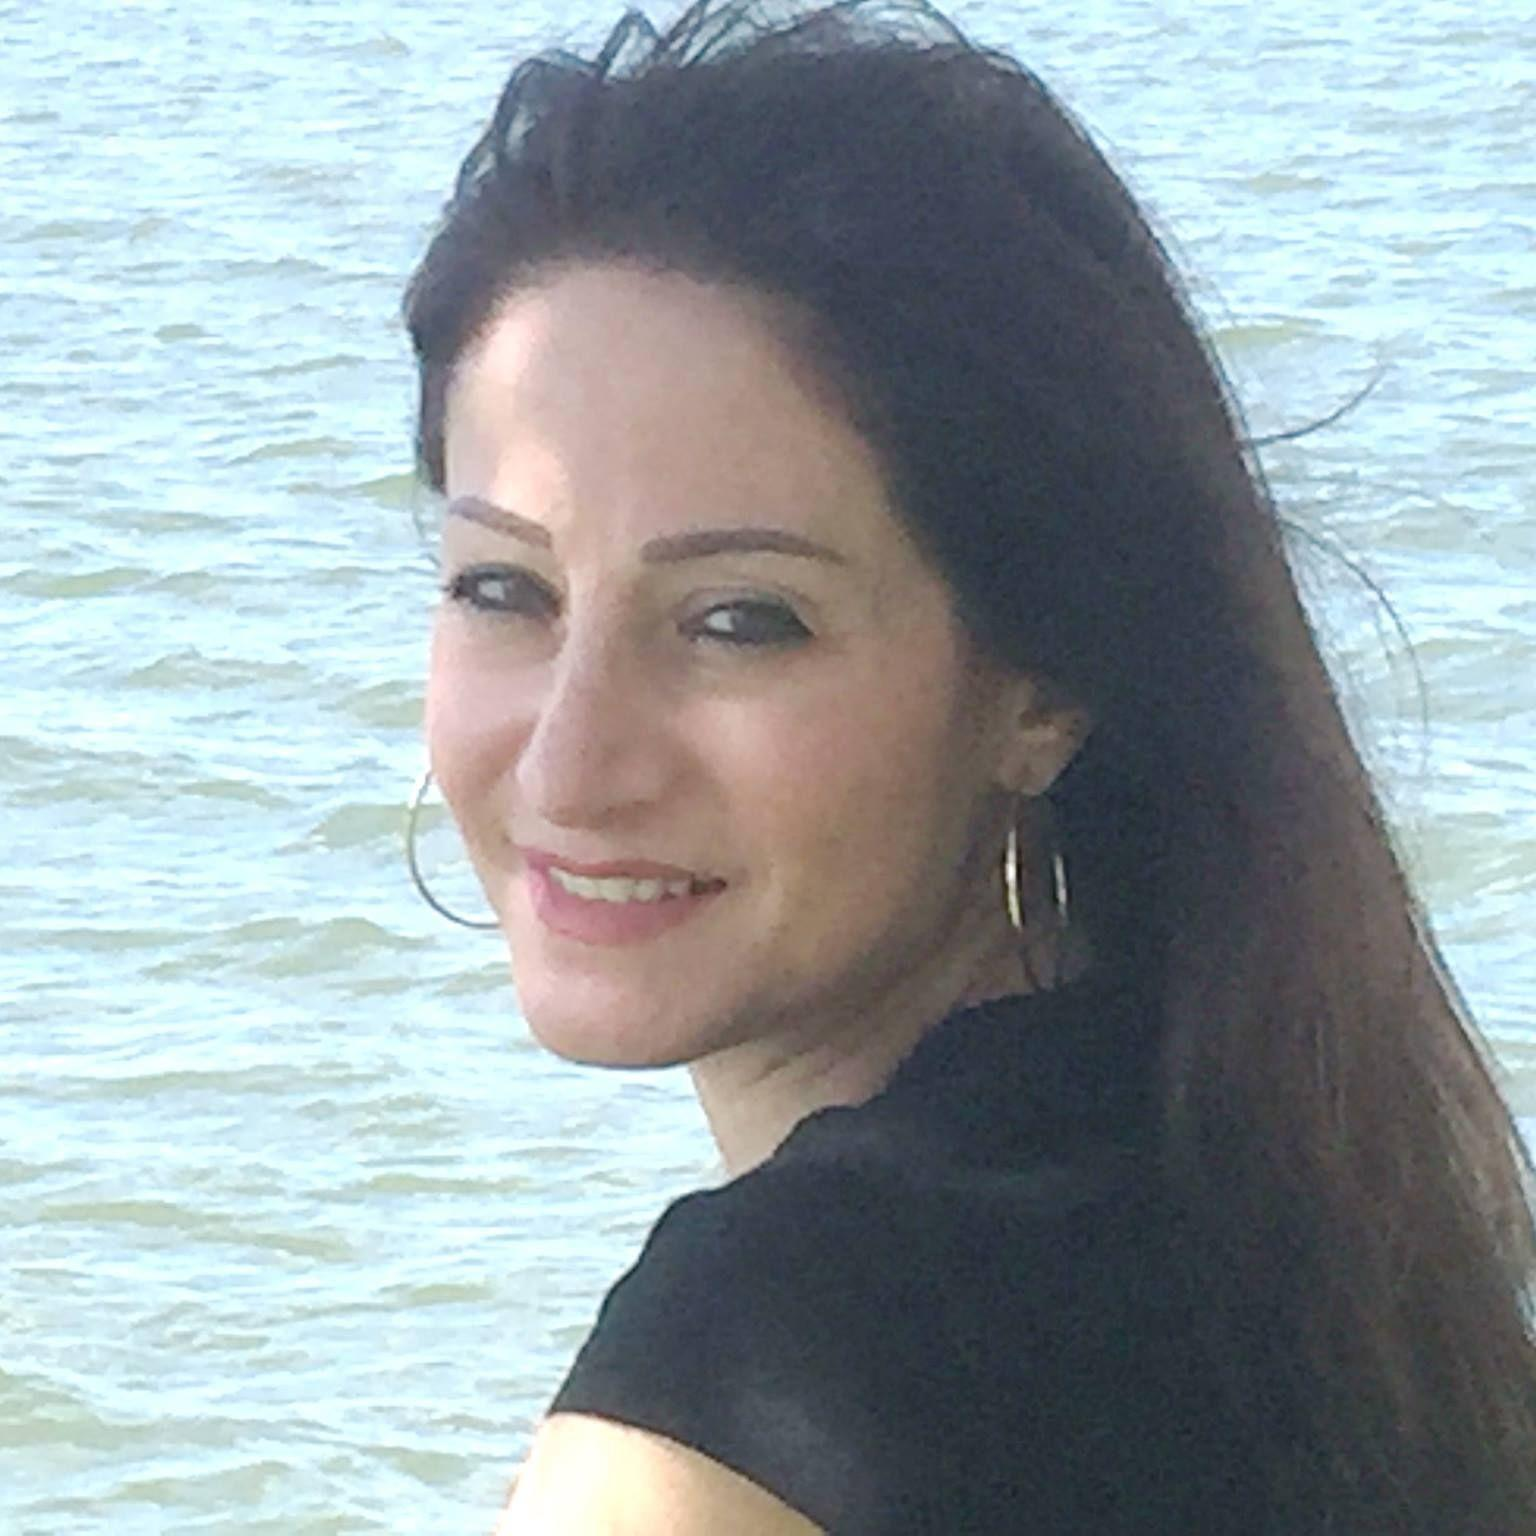 oldfort latin singles Martinique women - singles site connecting singles is a 100% free martinique singles site where you can make friends and meet martinique singles find an activity partner, new friends, a cool date or a soulmate, for marriage, a casual or a long term relationship.